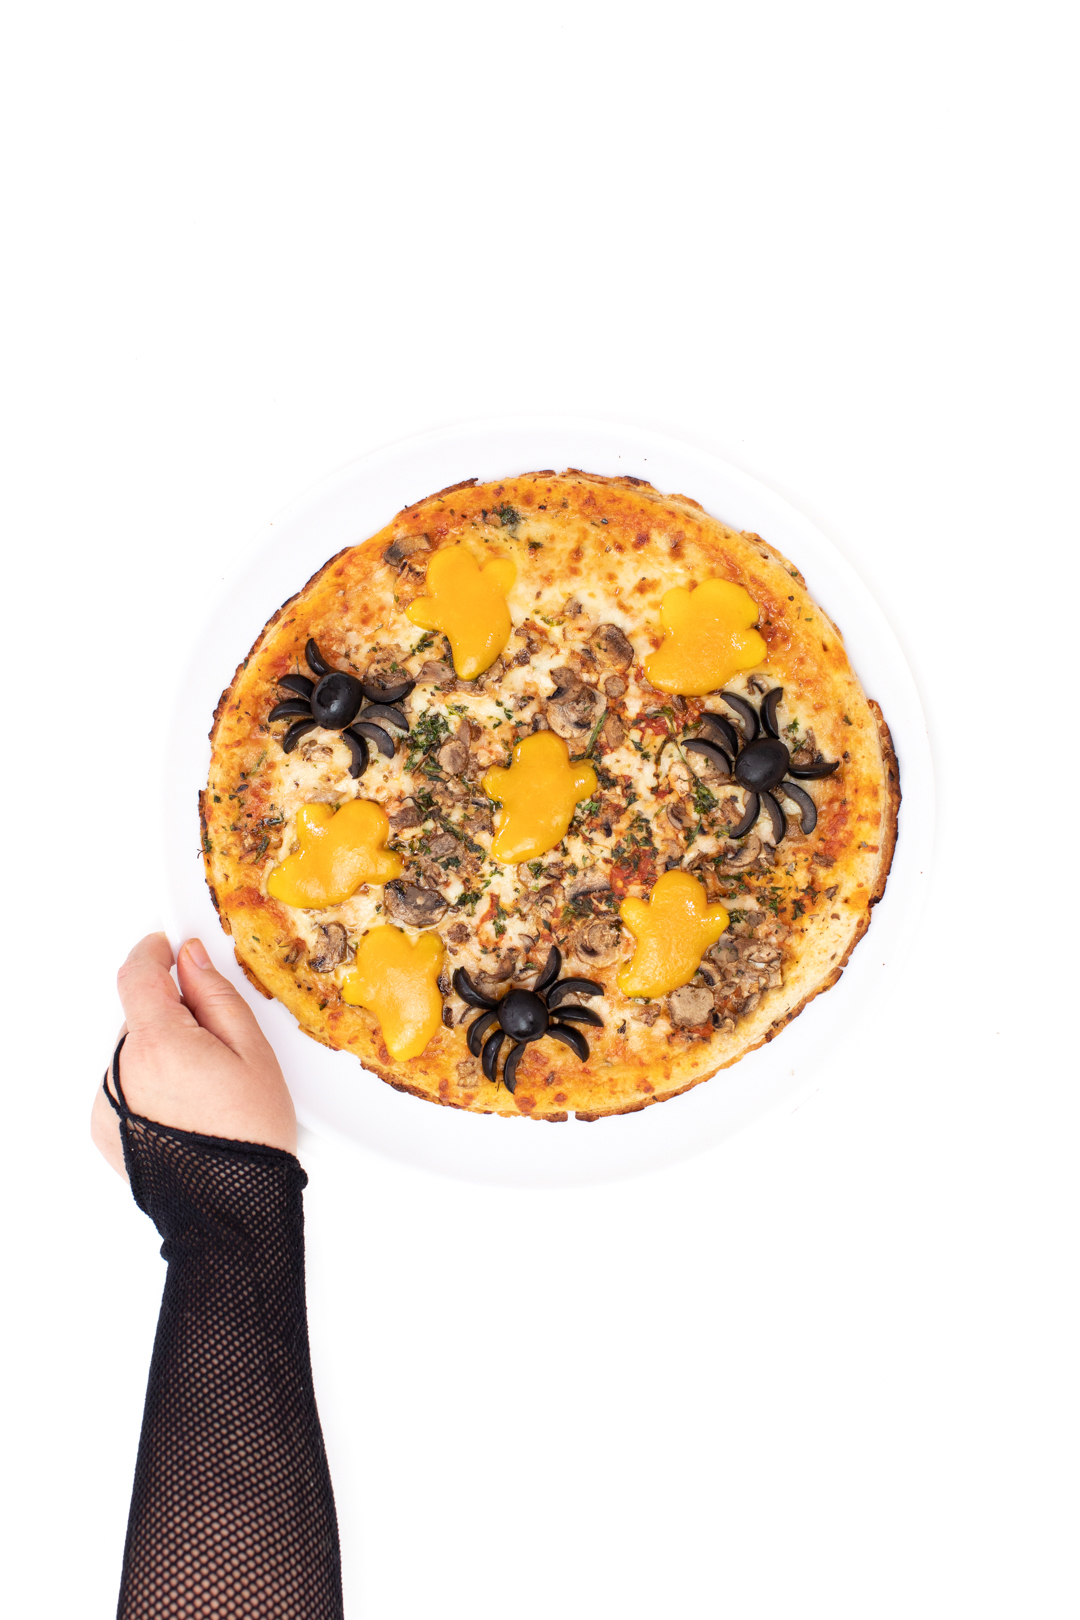 spider pizza with cheese ghosts to celebrate halloween